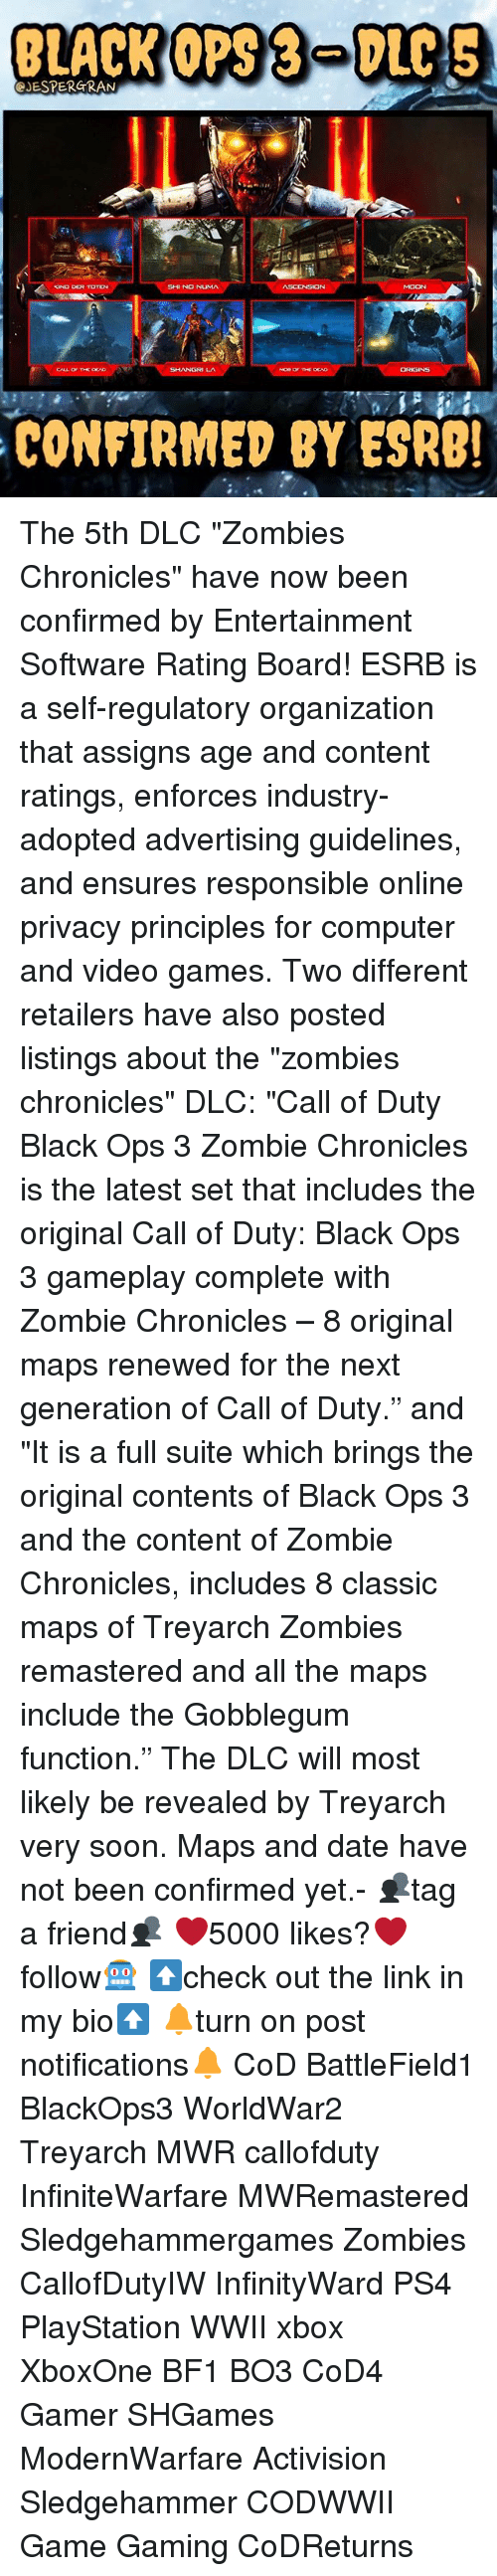 """Memes, PlayStation, and Ps4: BLACK OPS DLC S  CJESPERGRAN  KUNO DER TOTION  SHI NO NUMA  SHANGRI LA  CONFIRMED BY ESRB! The 5th DLC """"Zombies Chronicles"""" have now been confirmed by Entertainment Software Rating Board! ESRB is a self-regulatory organization that assigns age and content ratings, enforces industry-adopted advertising guidelines, and ensures responsible online privacy principles for computer and video games. Two different retailers have also posted listings about the """"zombies chronicles"""" DLC: """"Call of Duty Black Ops 3 Zombie Chronicles is the latest set that includes the original Call of Duty: Black Ops 3 gameplay complete with Zombie Chronicles – 8 original maps renewed for the next generation of Call of Duty."""" and """"It is a full suite which brings the original contents of Black Ops 3 and the content of Zombie Chronicles, includes 8 classic maps of Treyarch Zombies remastered and all the maps include the Gobblegum function."""" The DLC will most likely be revealed by Treyarch very soon. Maps and date have not been confirmed yet.- 👥tag a friend👥 ❤️5000 likes?❤️ follow🤖 ⬆️check out the link in my bio⬆️ 🔔turn on post notifications🔔 CoD BattleField1 BlackOps3 WorldWar2 Treyarch MWR callofduty InfiniteWarfare MWRemastered Sledgehammergames Zombies CallofDutyIW InfinityWard PS4 PlayStation WWII xbox XboxOne BF1 BO3 CoD4 Gamer SHGames ModernWarfare Activision Sledgehammer CODWWII Game Gaming CoDReturns"""